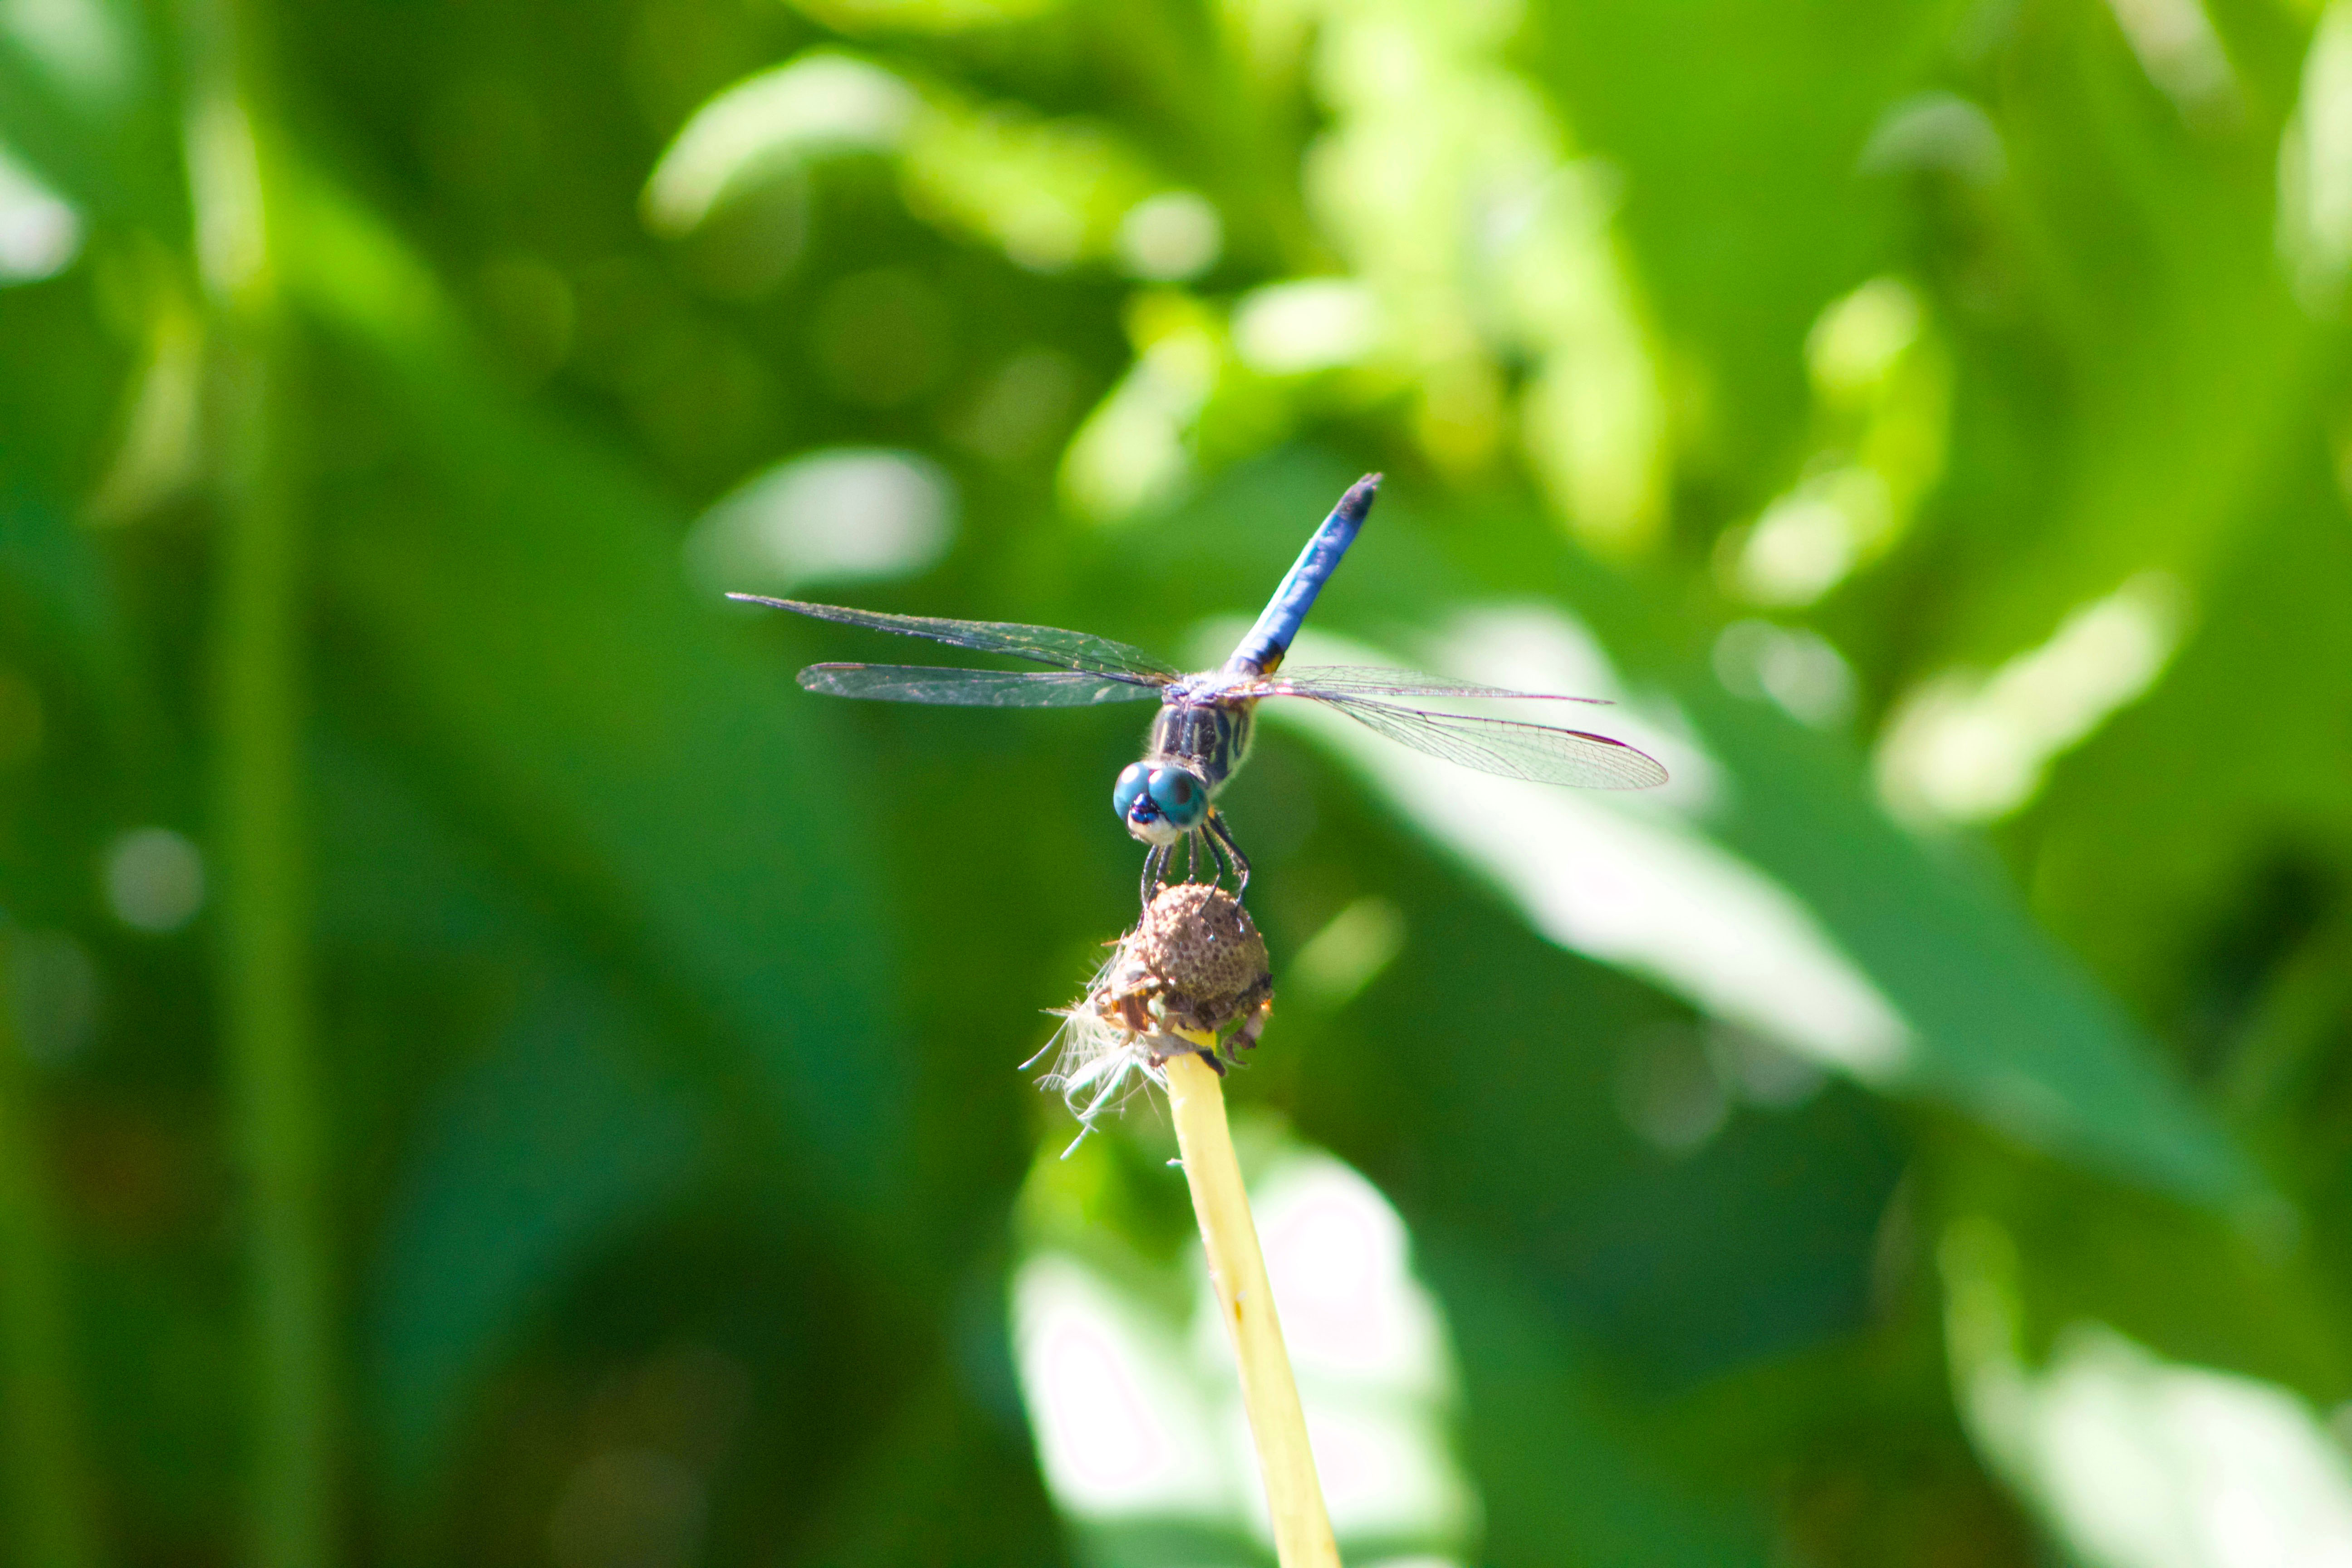 Blue dragonfly front view